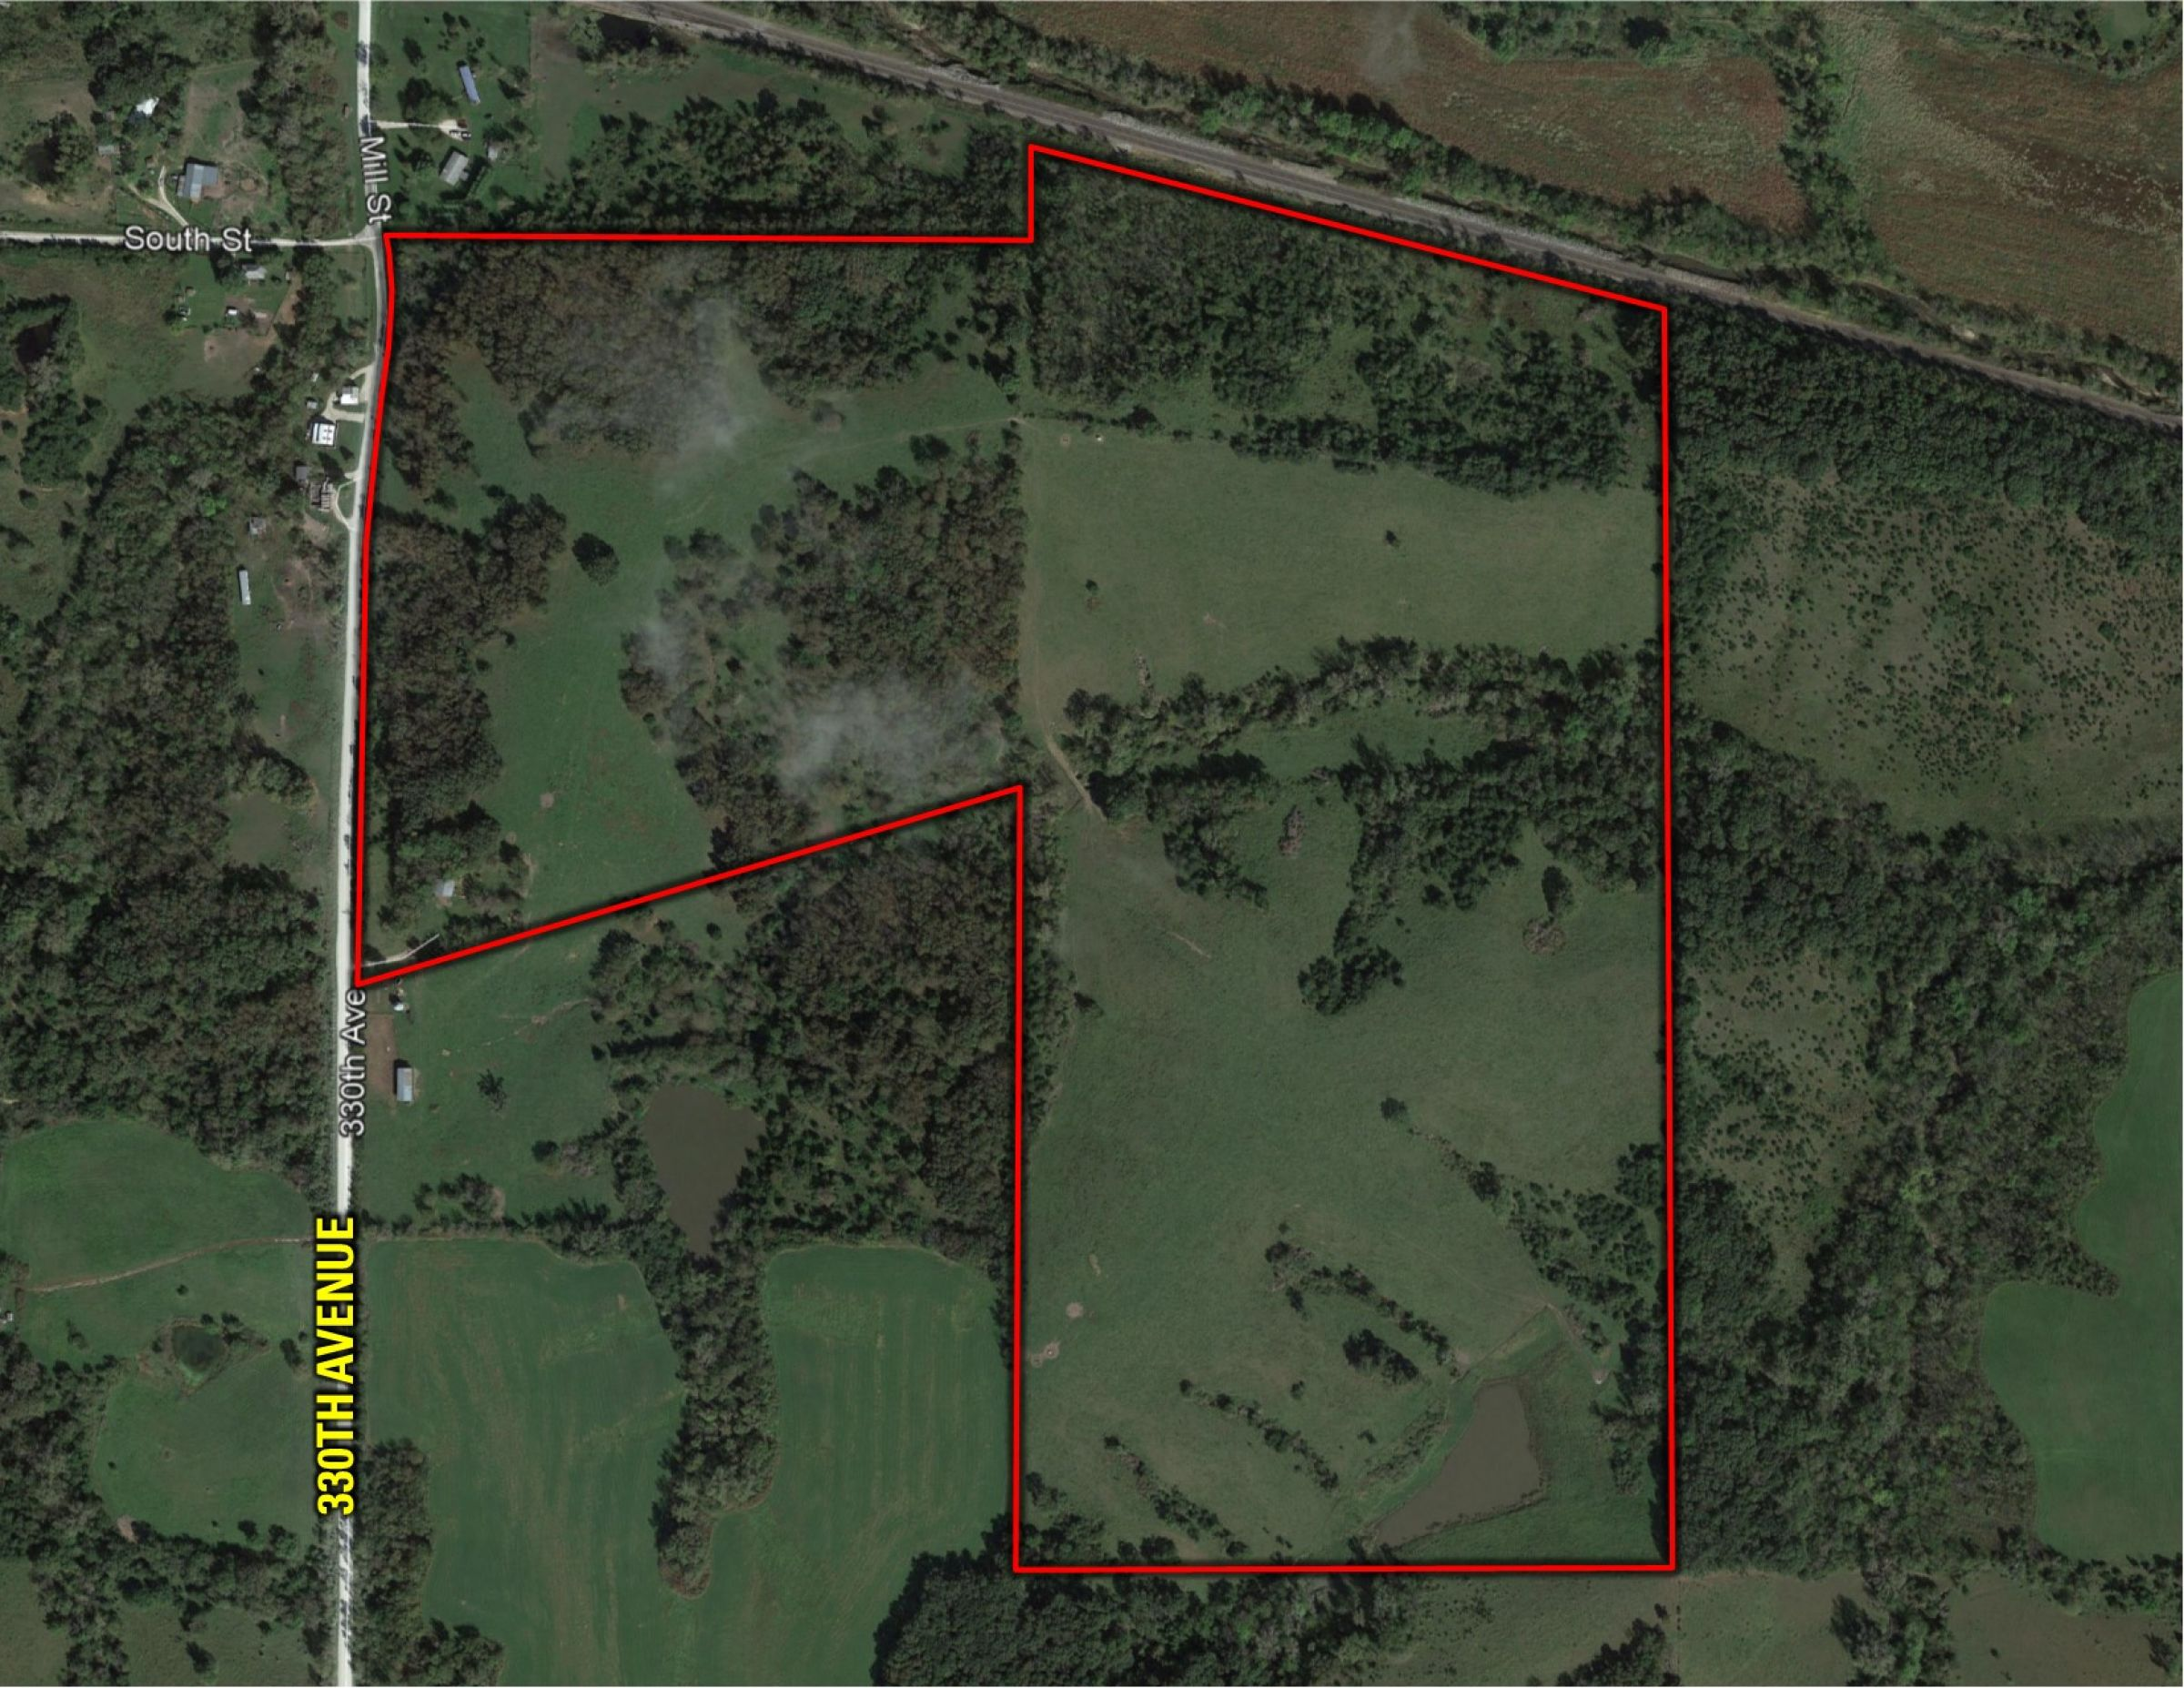 Peoples Company farmland for sale in-Clarke County-IA-330th Ave. Woodburn, IA 50275